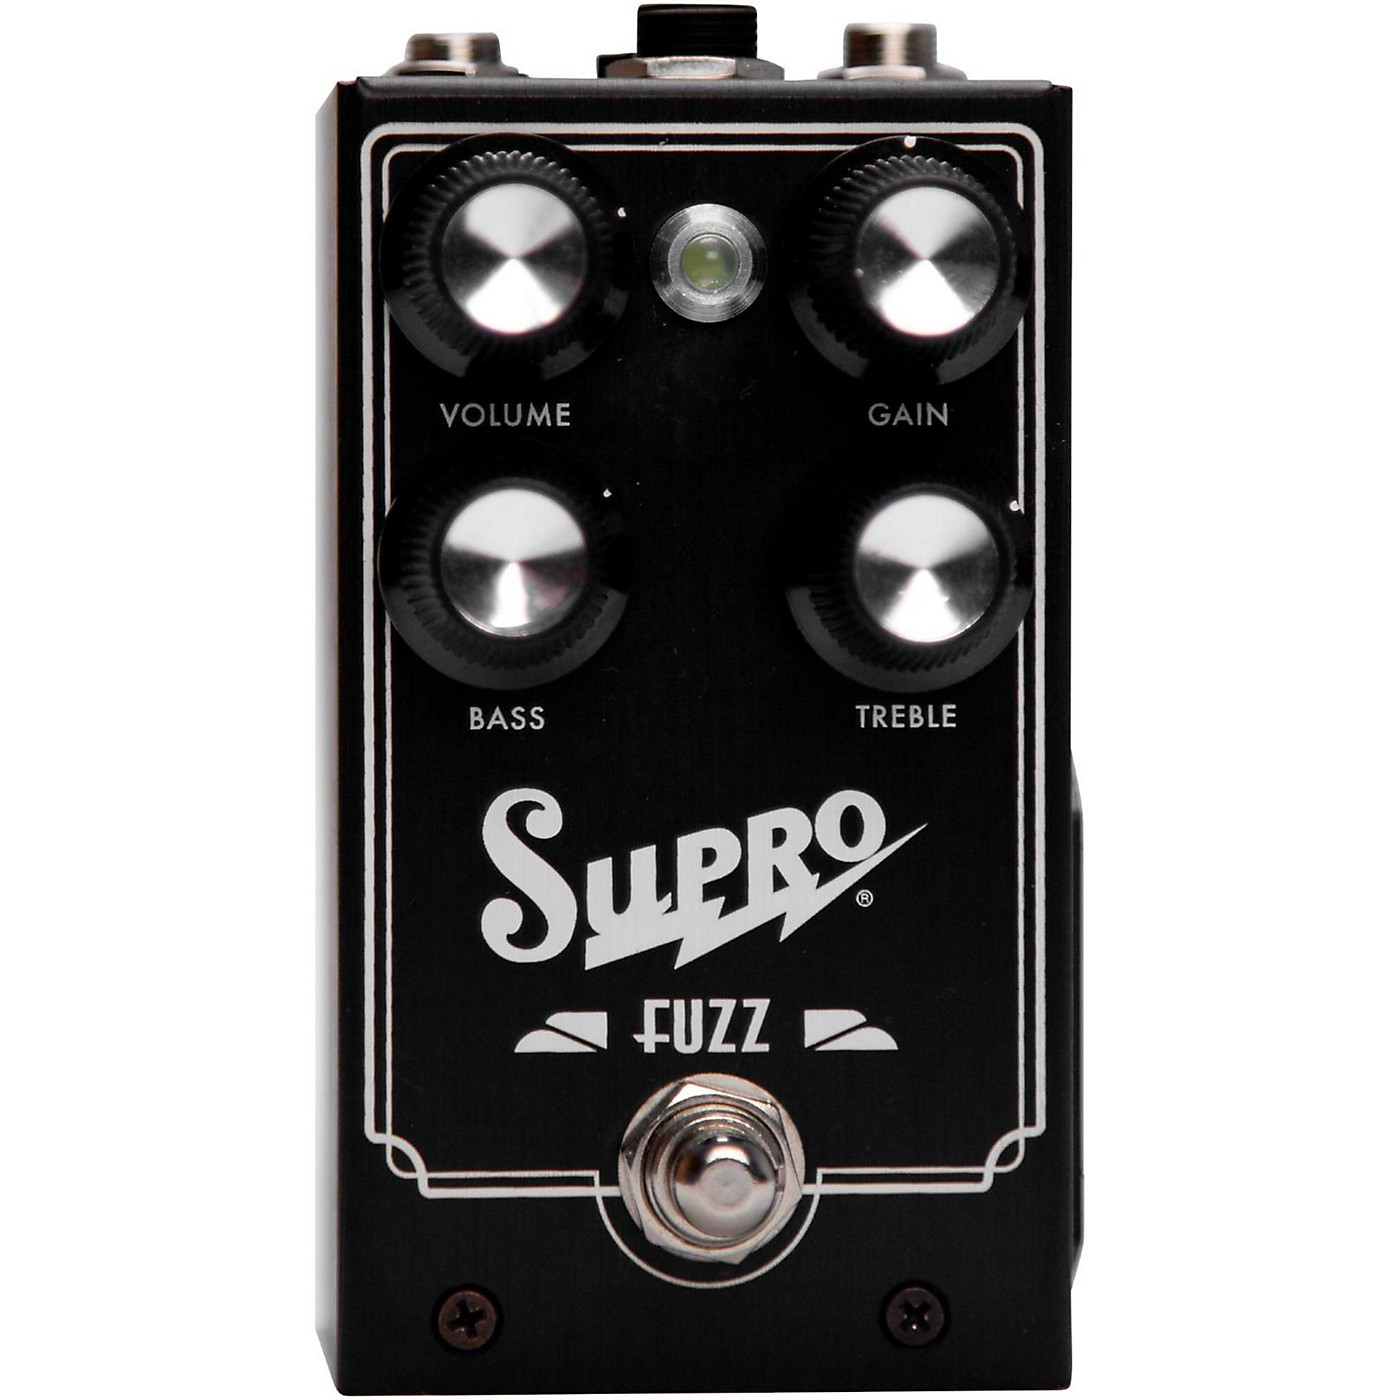 Supro Fuzz Guitar Effects Pedal thumbnail